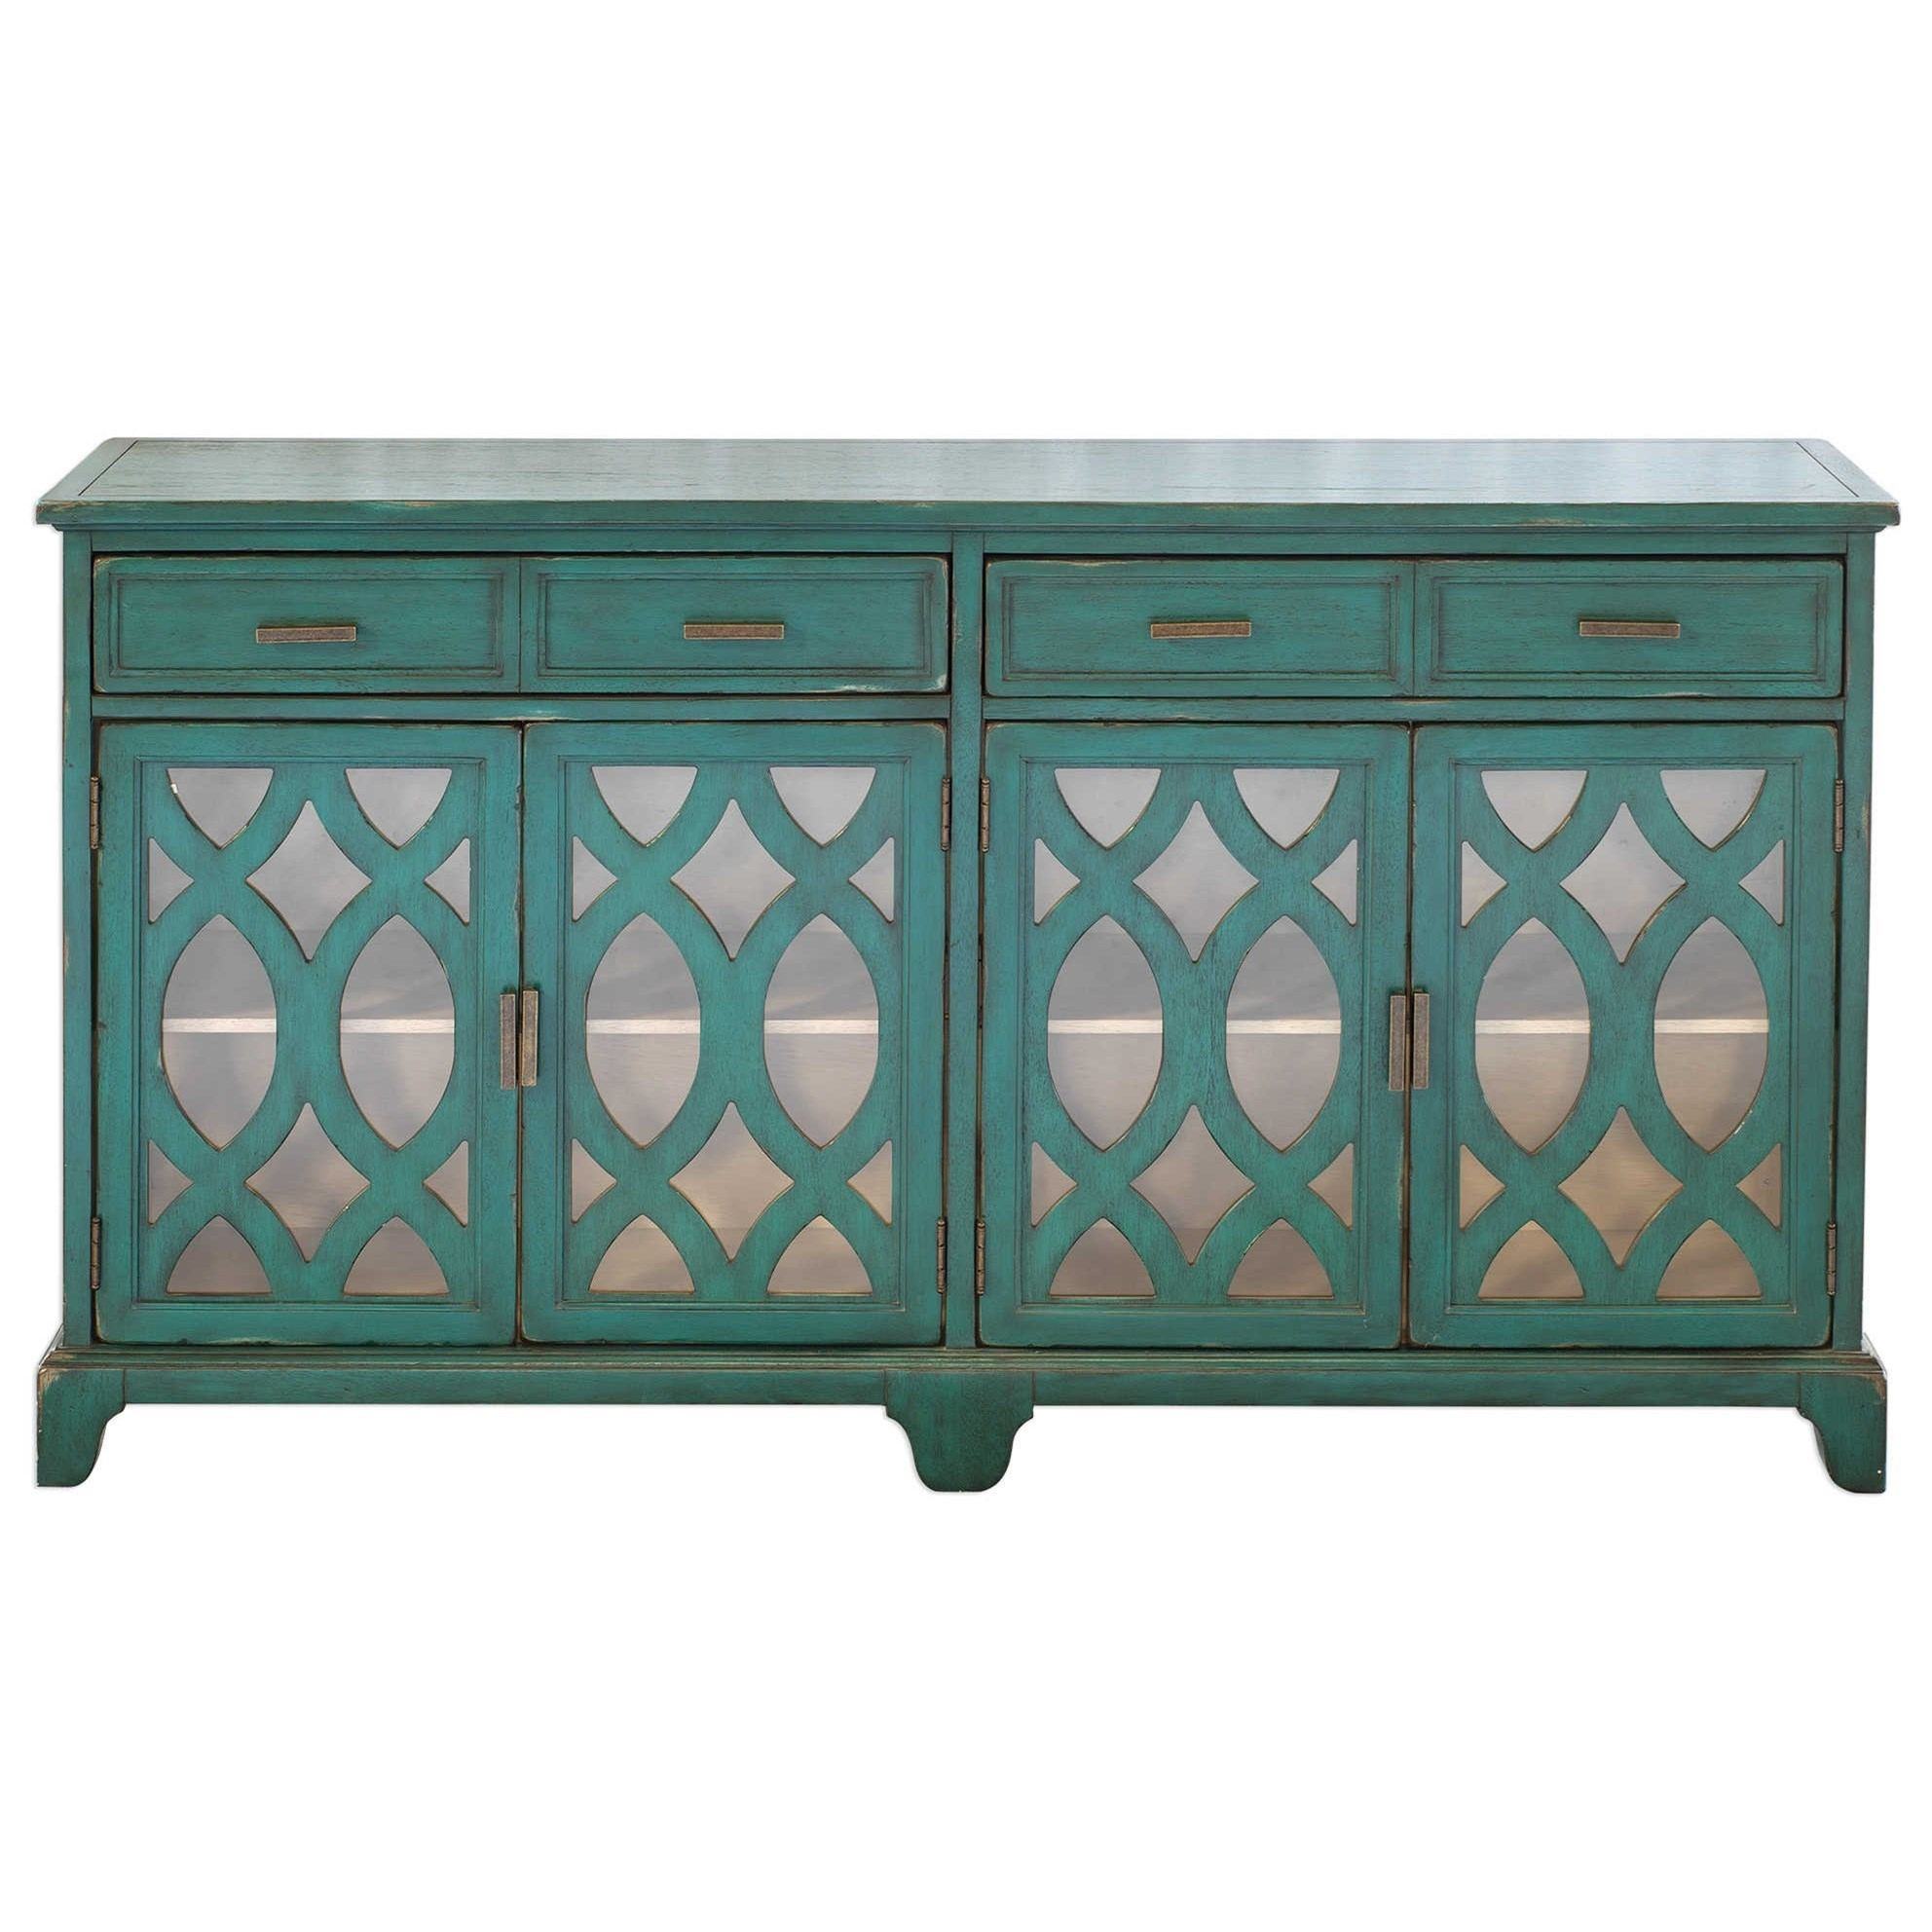 Accent Furniture Oksana Wooden Credenza by Uttermost at Del Sol Furniture